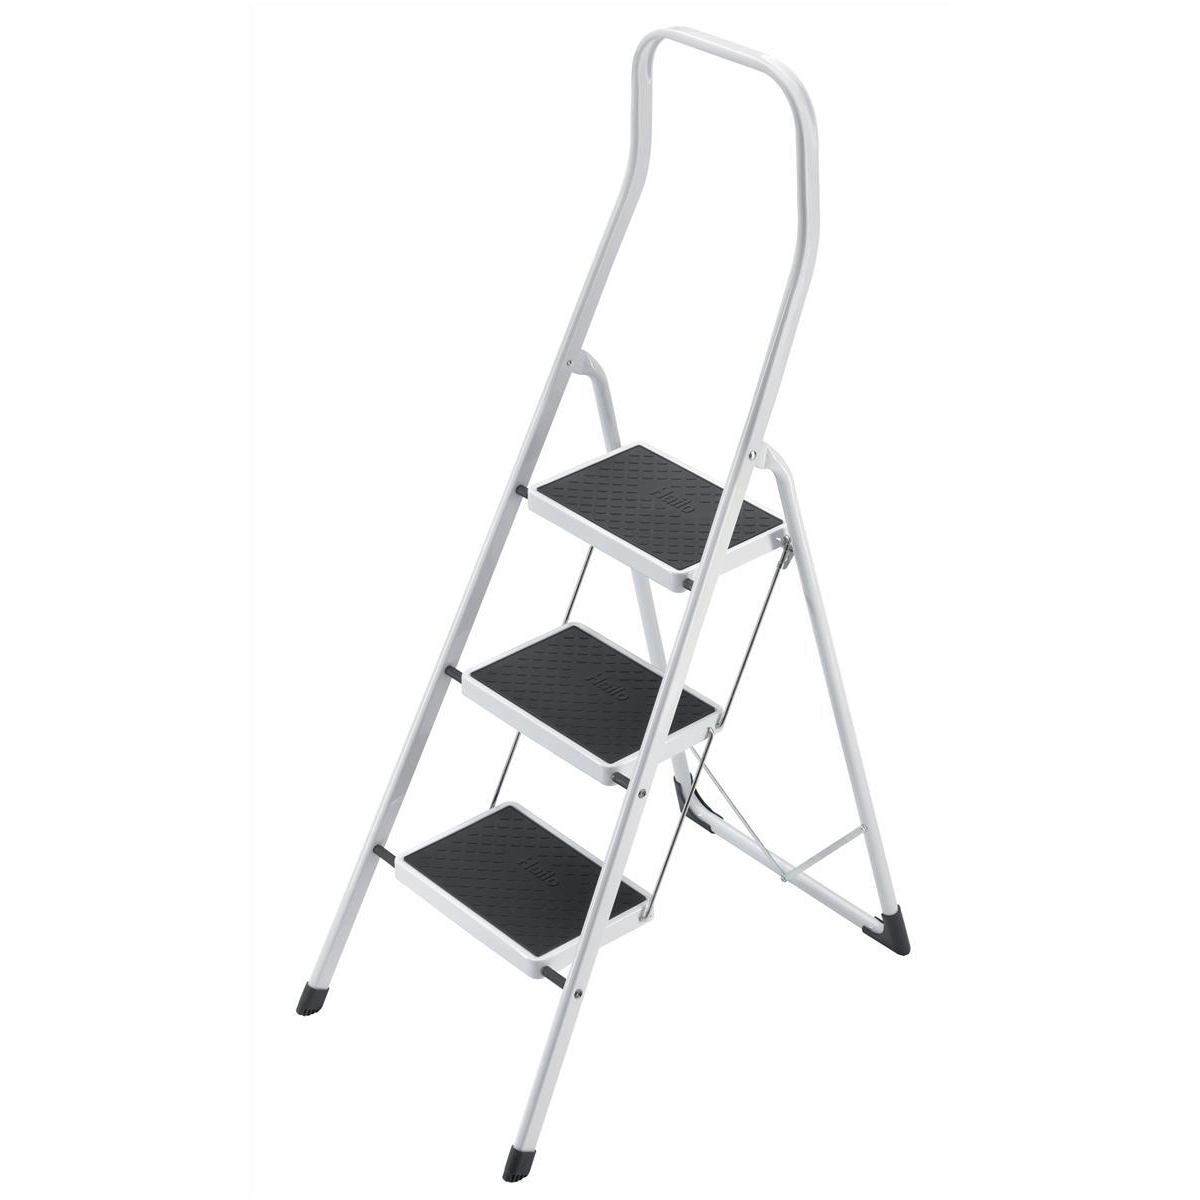 Step Stools 5 Star Facilities Safety Steps Folding Safety Rail H0.5m 3 Treads Capacity 150kg H2.49m 6.6kg